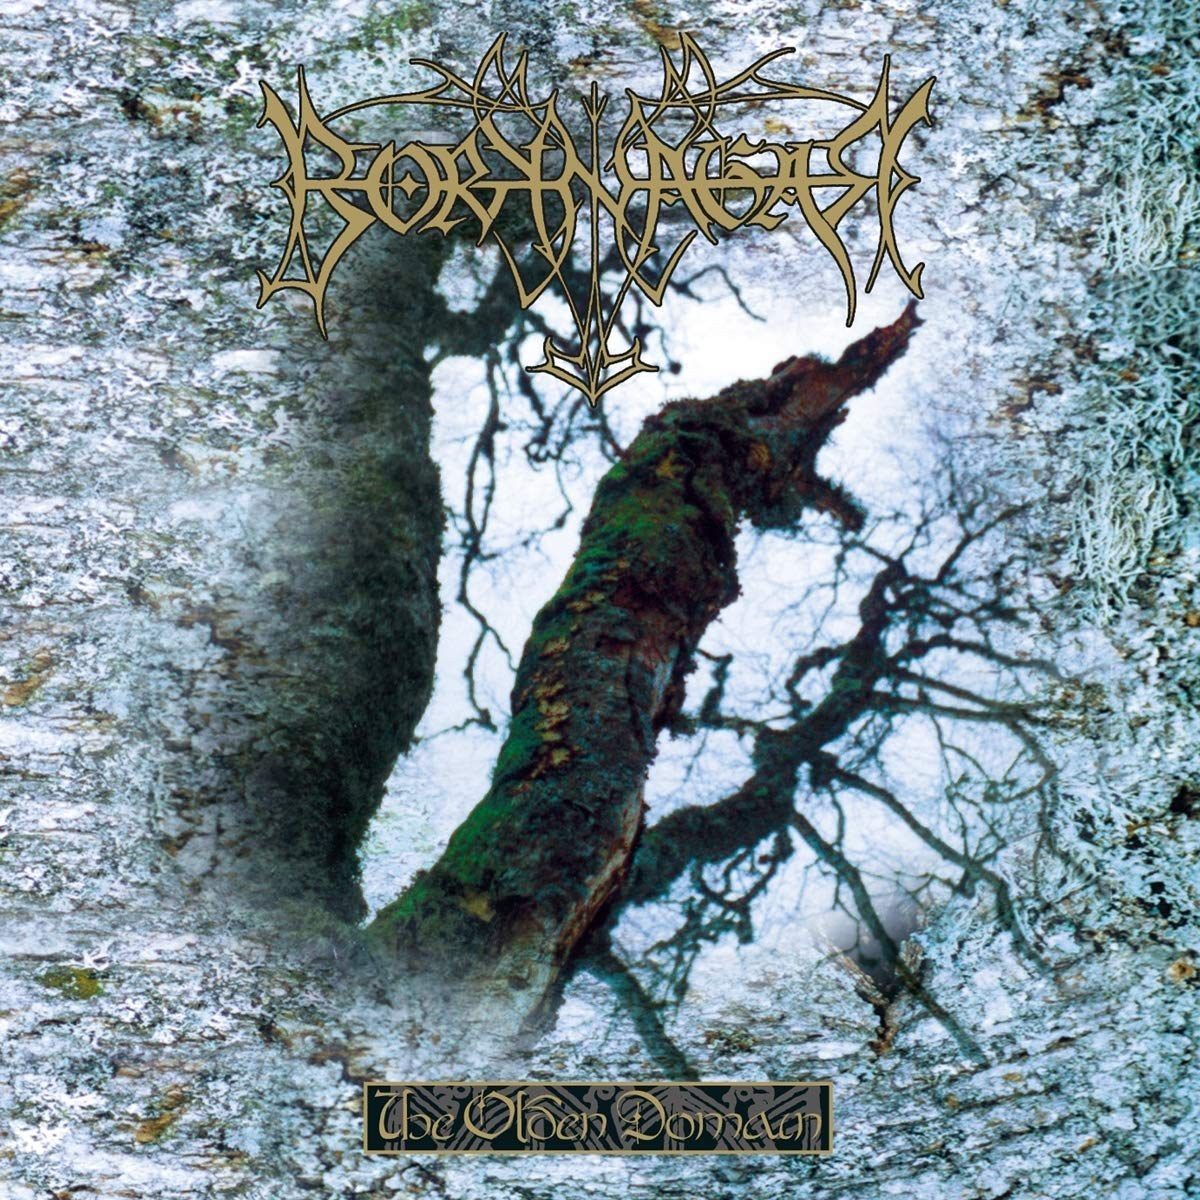 Review for Borknagar - The Olden Domain